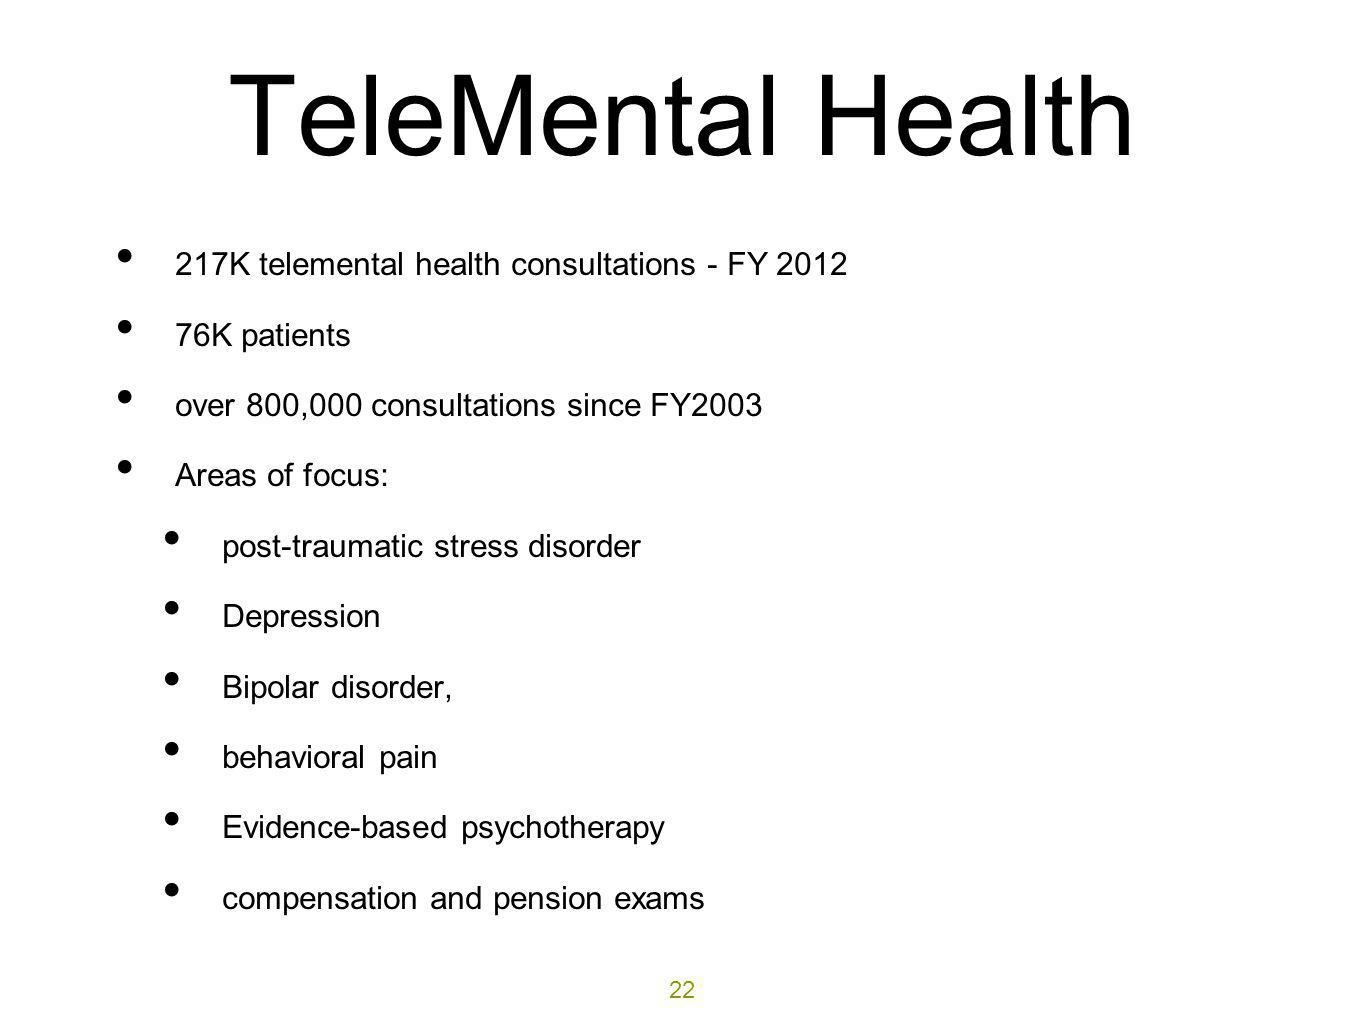 TeleMental Health 217K telemental health consultations - FY 2012 76K patients over 800,000 consultations since FY2003 Areas of focus: post-traumatic s